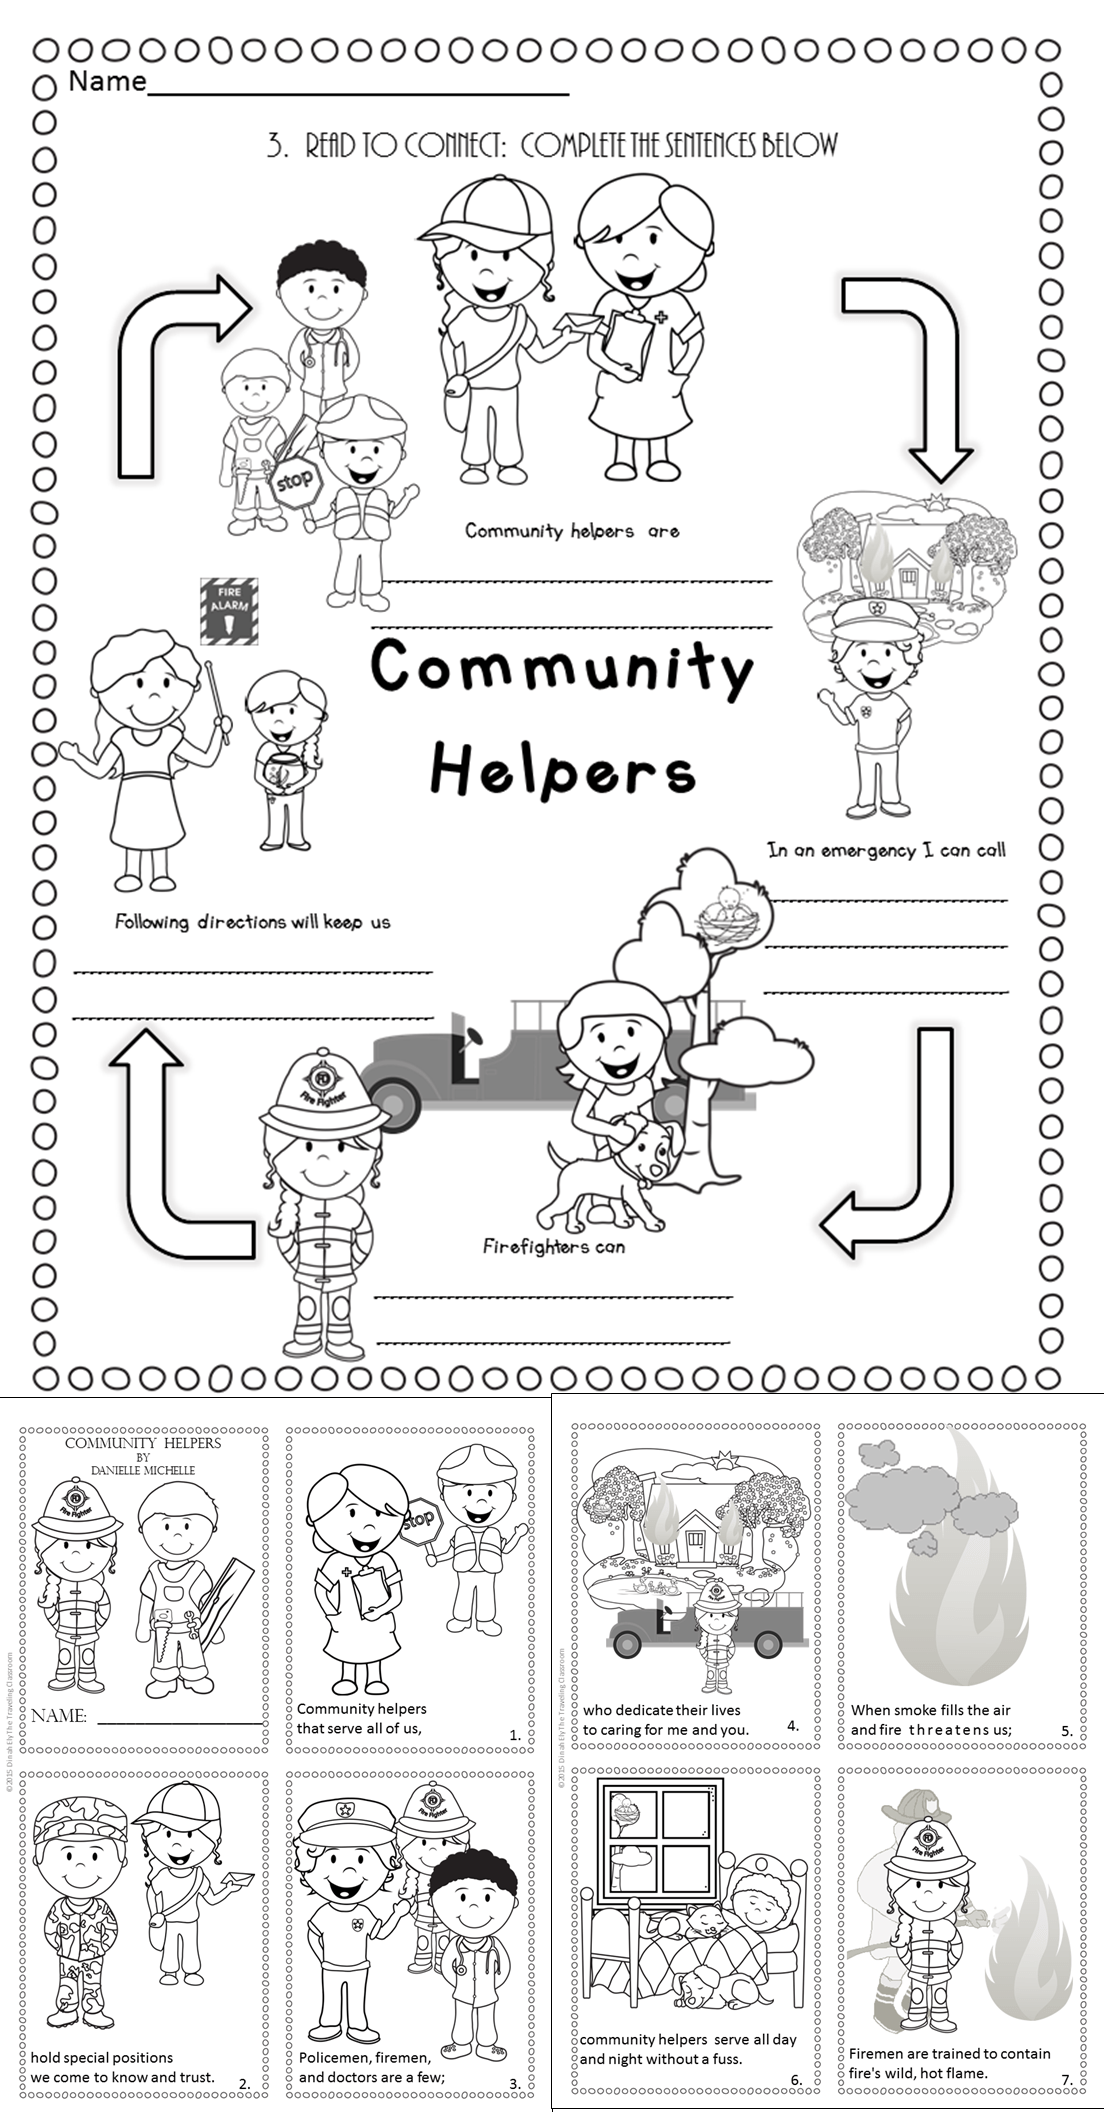 Worksheet Fire Safety Worksheet Worksheet Fun Worksheet